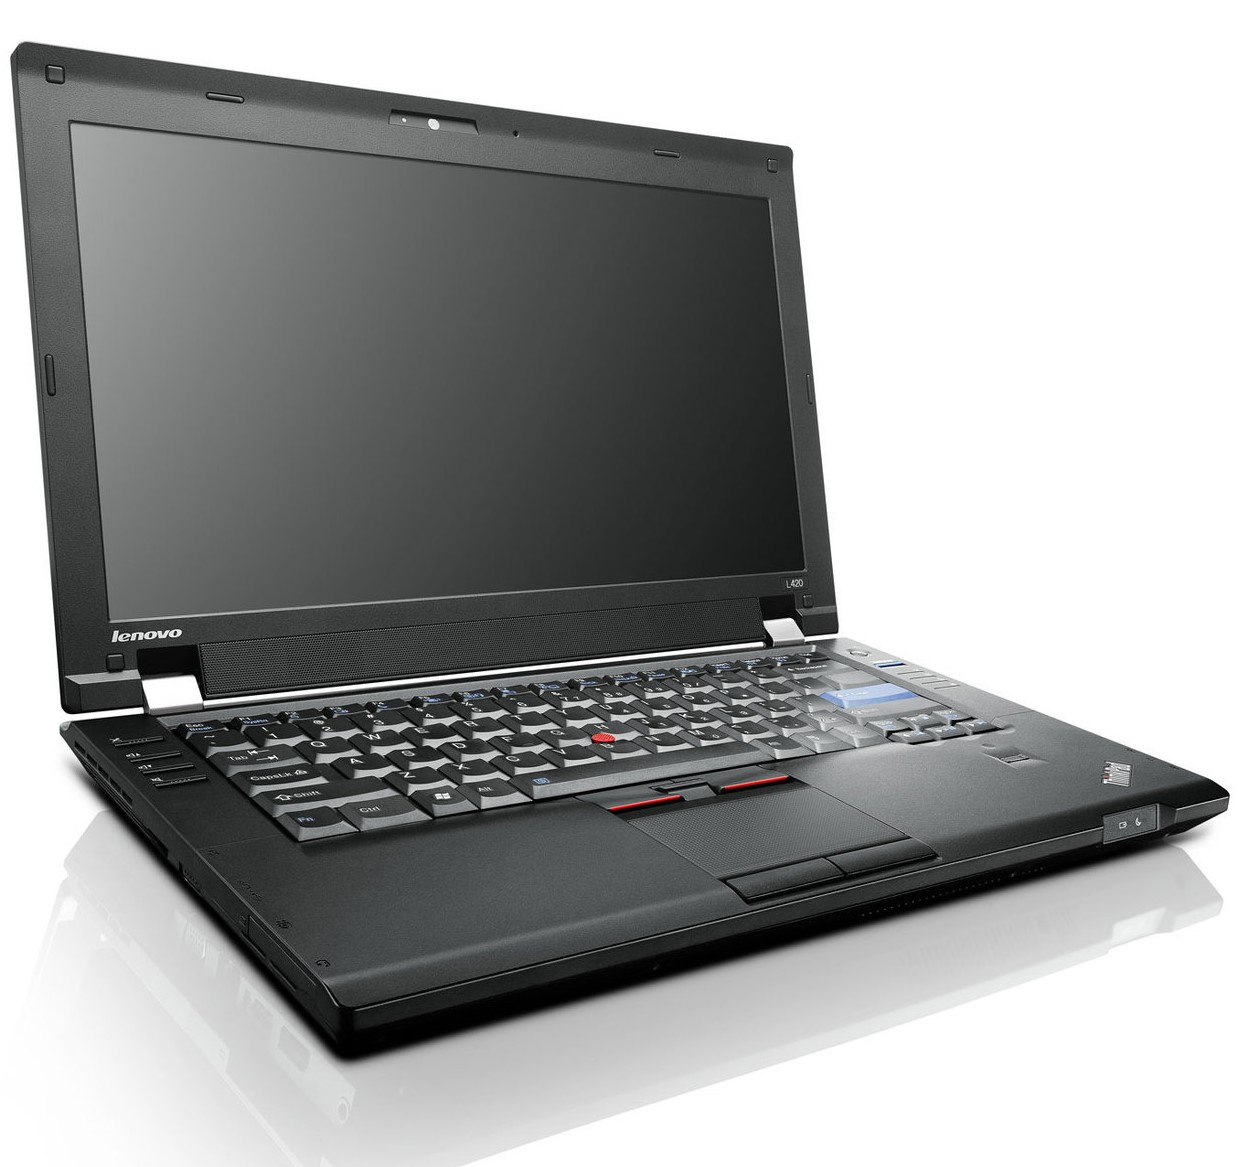 Thinkpad L420 / i5 2,5GHz / 4GB / 320GB HDD / WIN 7